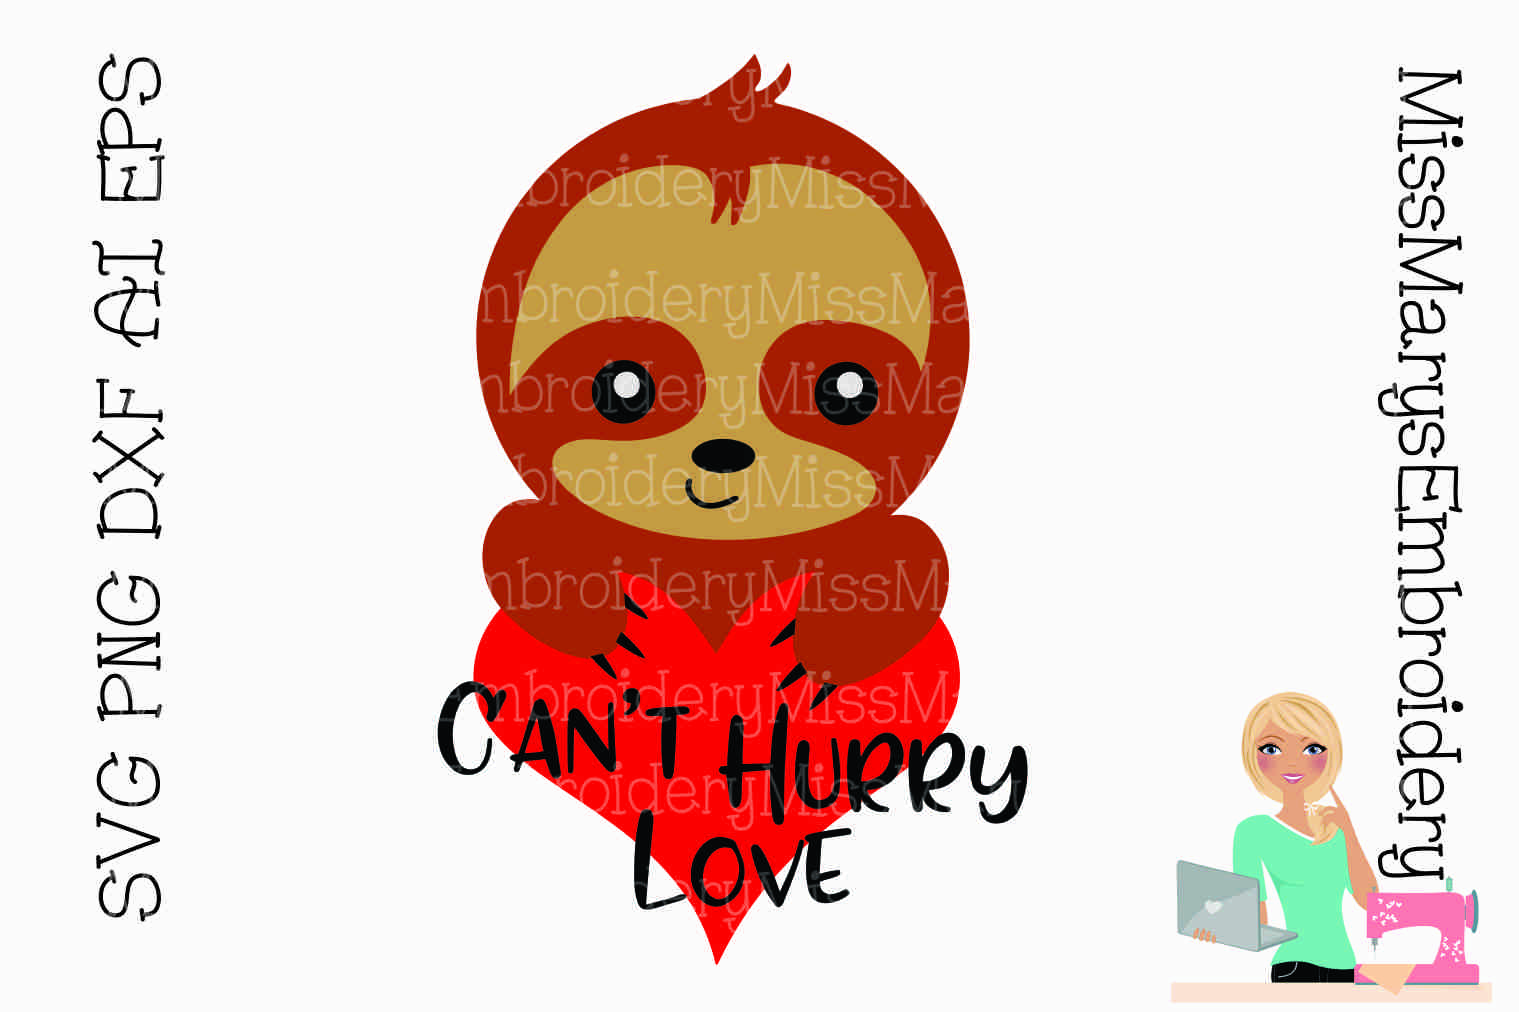 Can't Hurry Love Sloth SVG Cutting File PNG DXF AI EPS example image 1